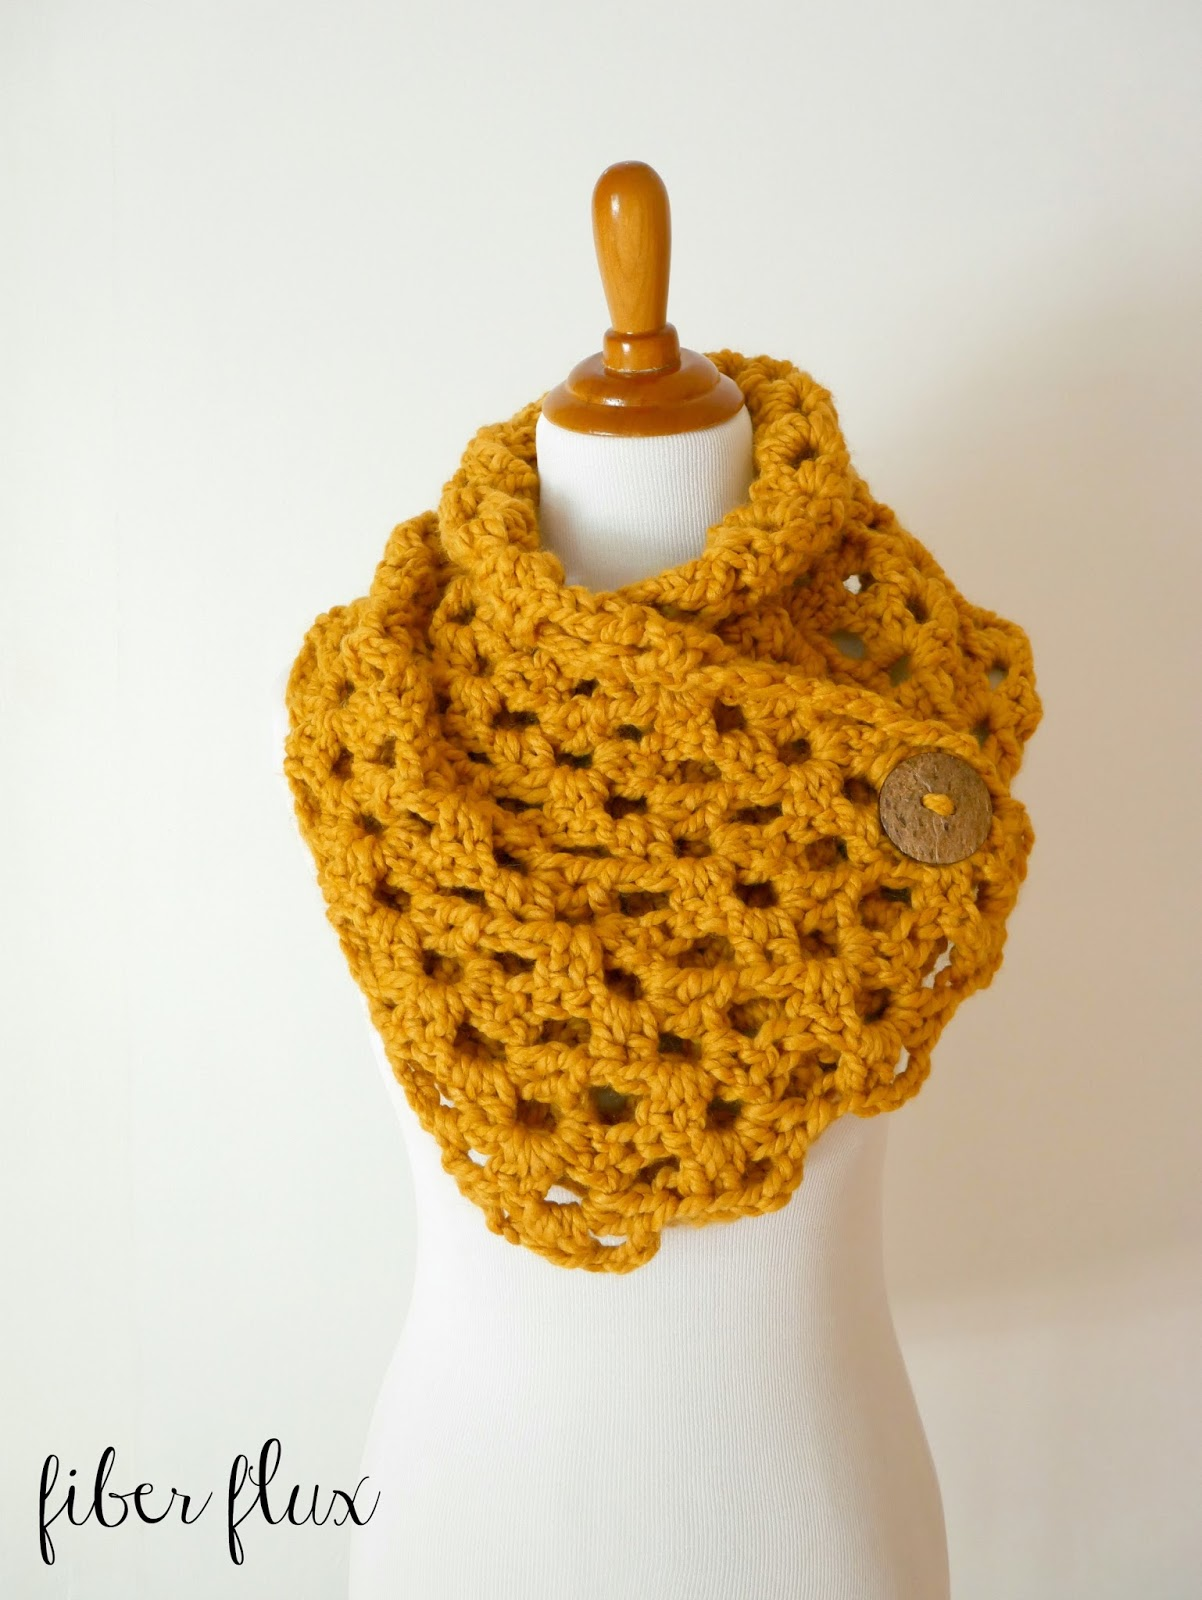 Fiber flux free crochet patterntumn morning button cowl free crochet patterntumn morning button cowl bankloansurffo Gallery